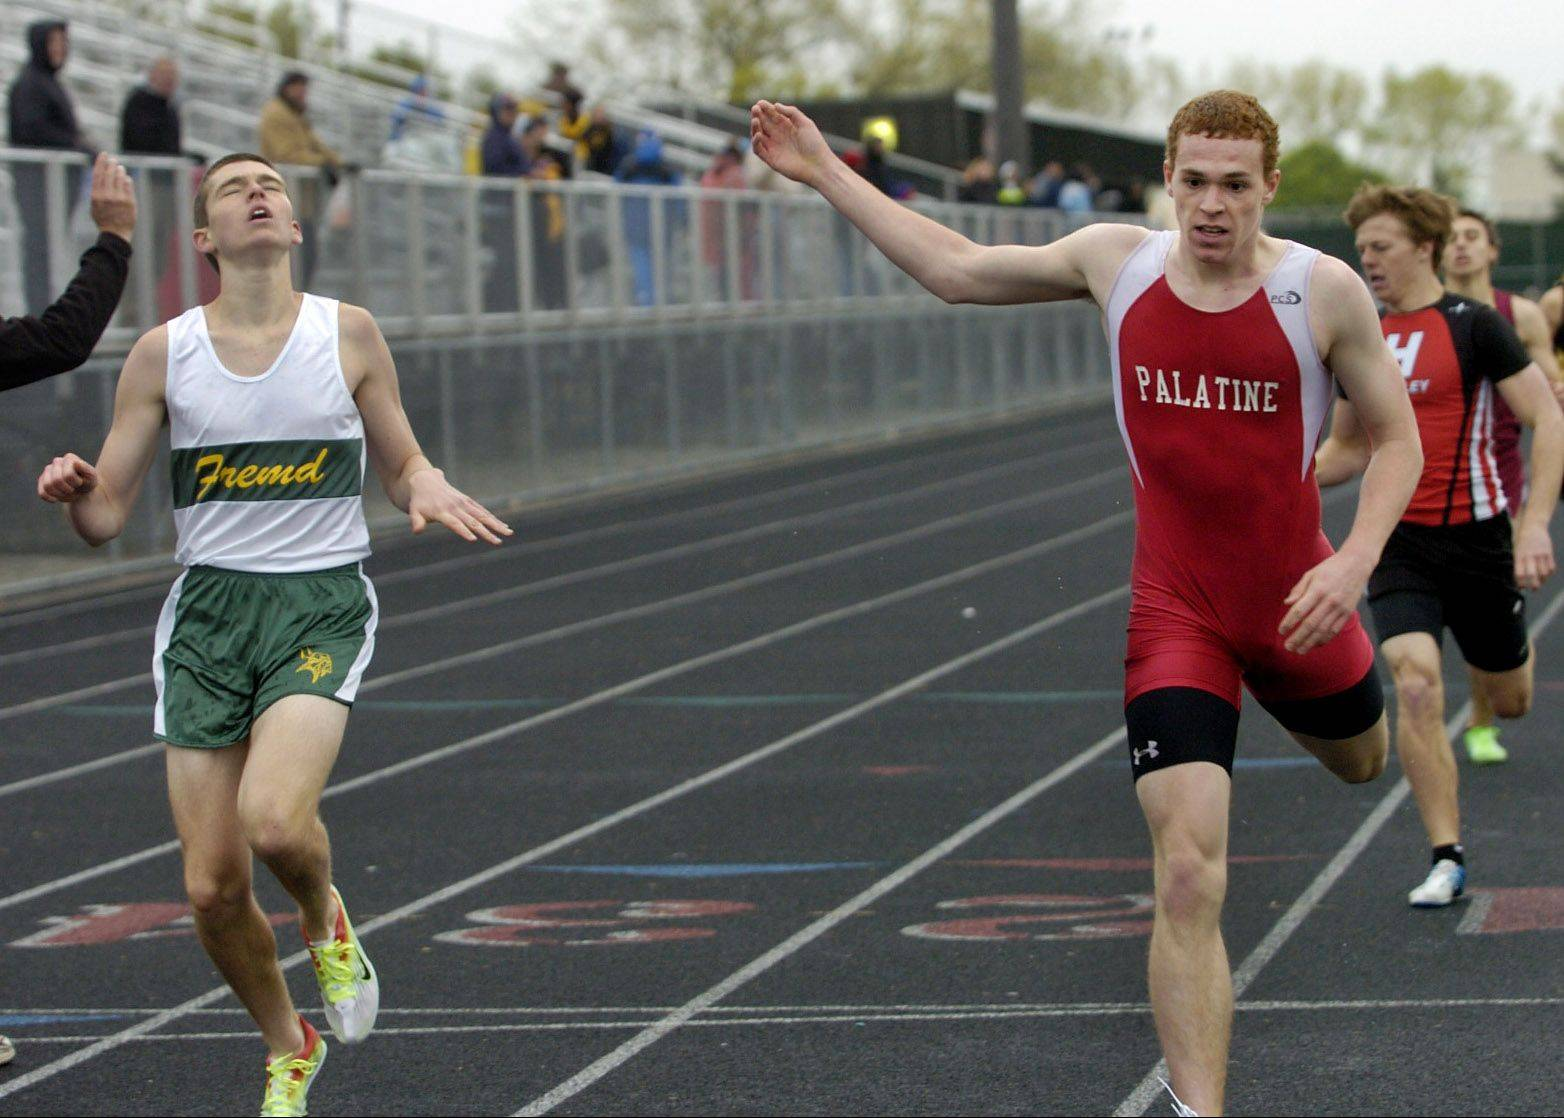 Andrew Clingerman of Palatine, right, edges out Fremd's Nick Vucovich in the 800-meter run at the Palatine Relays last spring. Both figure to play key roles for their teams, both of which embrace the upcoming dual meet between the programs.